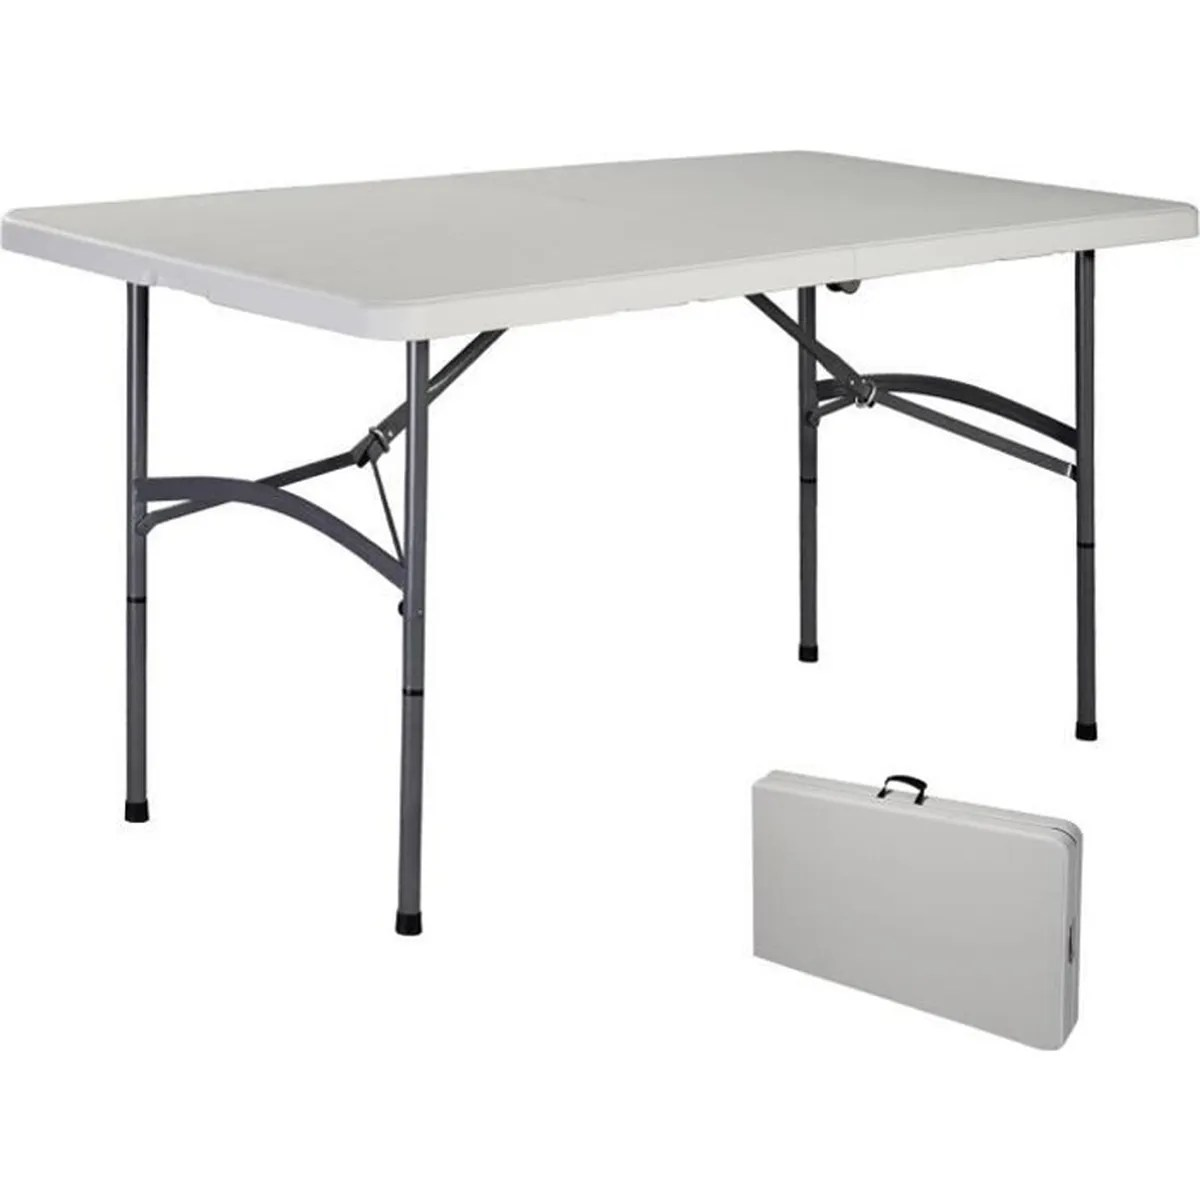 Table Jardin Blanche Table Jardin Blanche Achat Vente Pas Cher